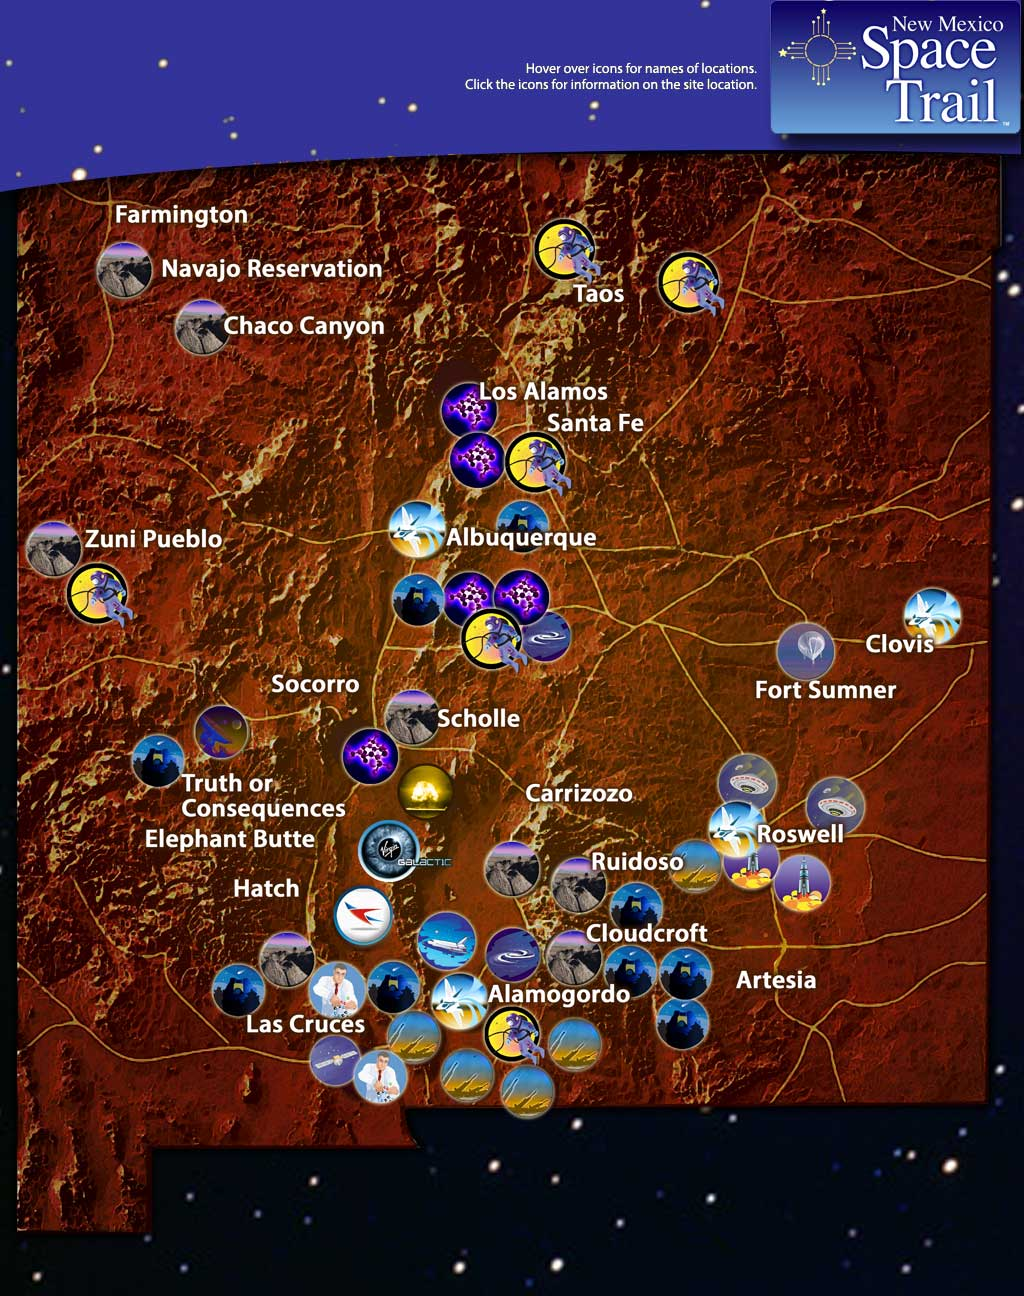 NM Space Trail Map